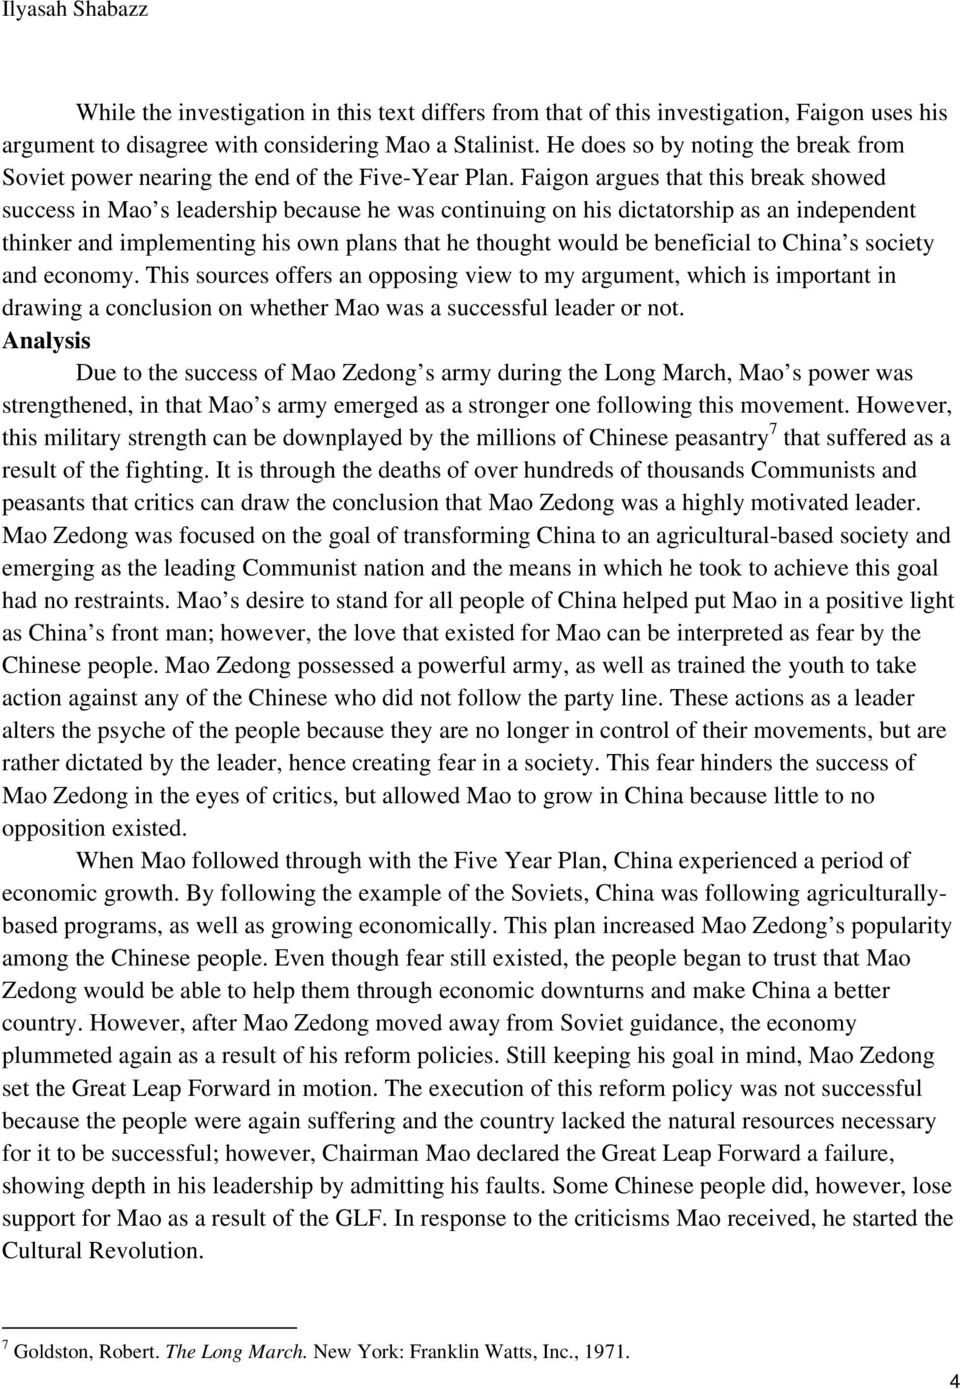 Faigon argues that this break showed success in Mao s leadership because he was continuing on his dictatorship as an independent thinker and implementing his own plans that he thought would be